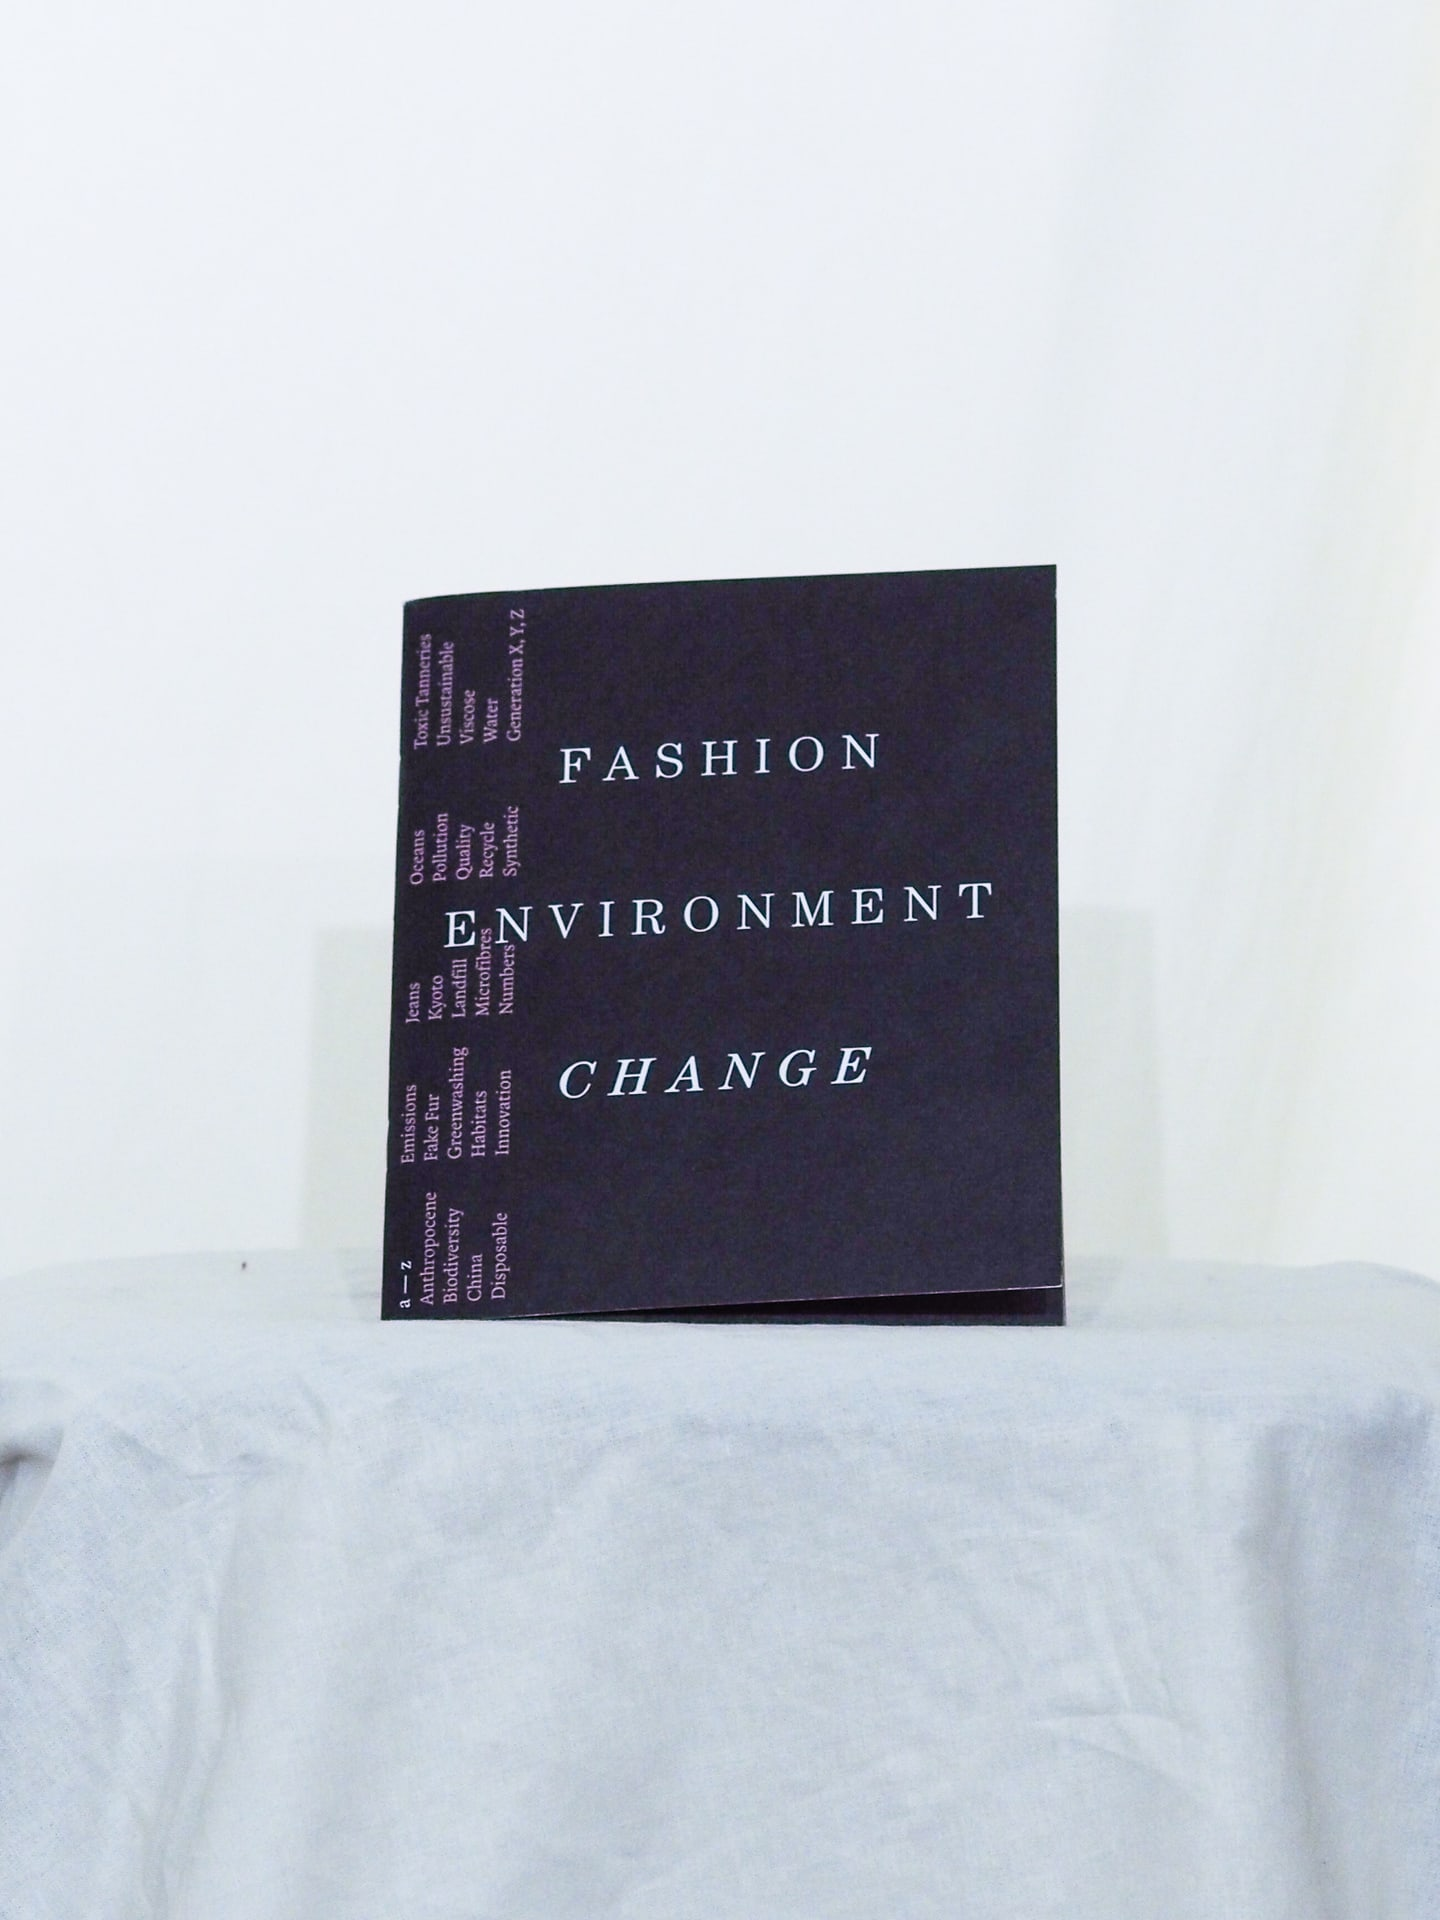 Fashion revolution fanzine 003